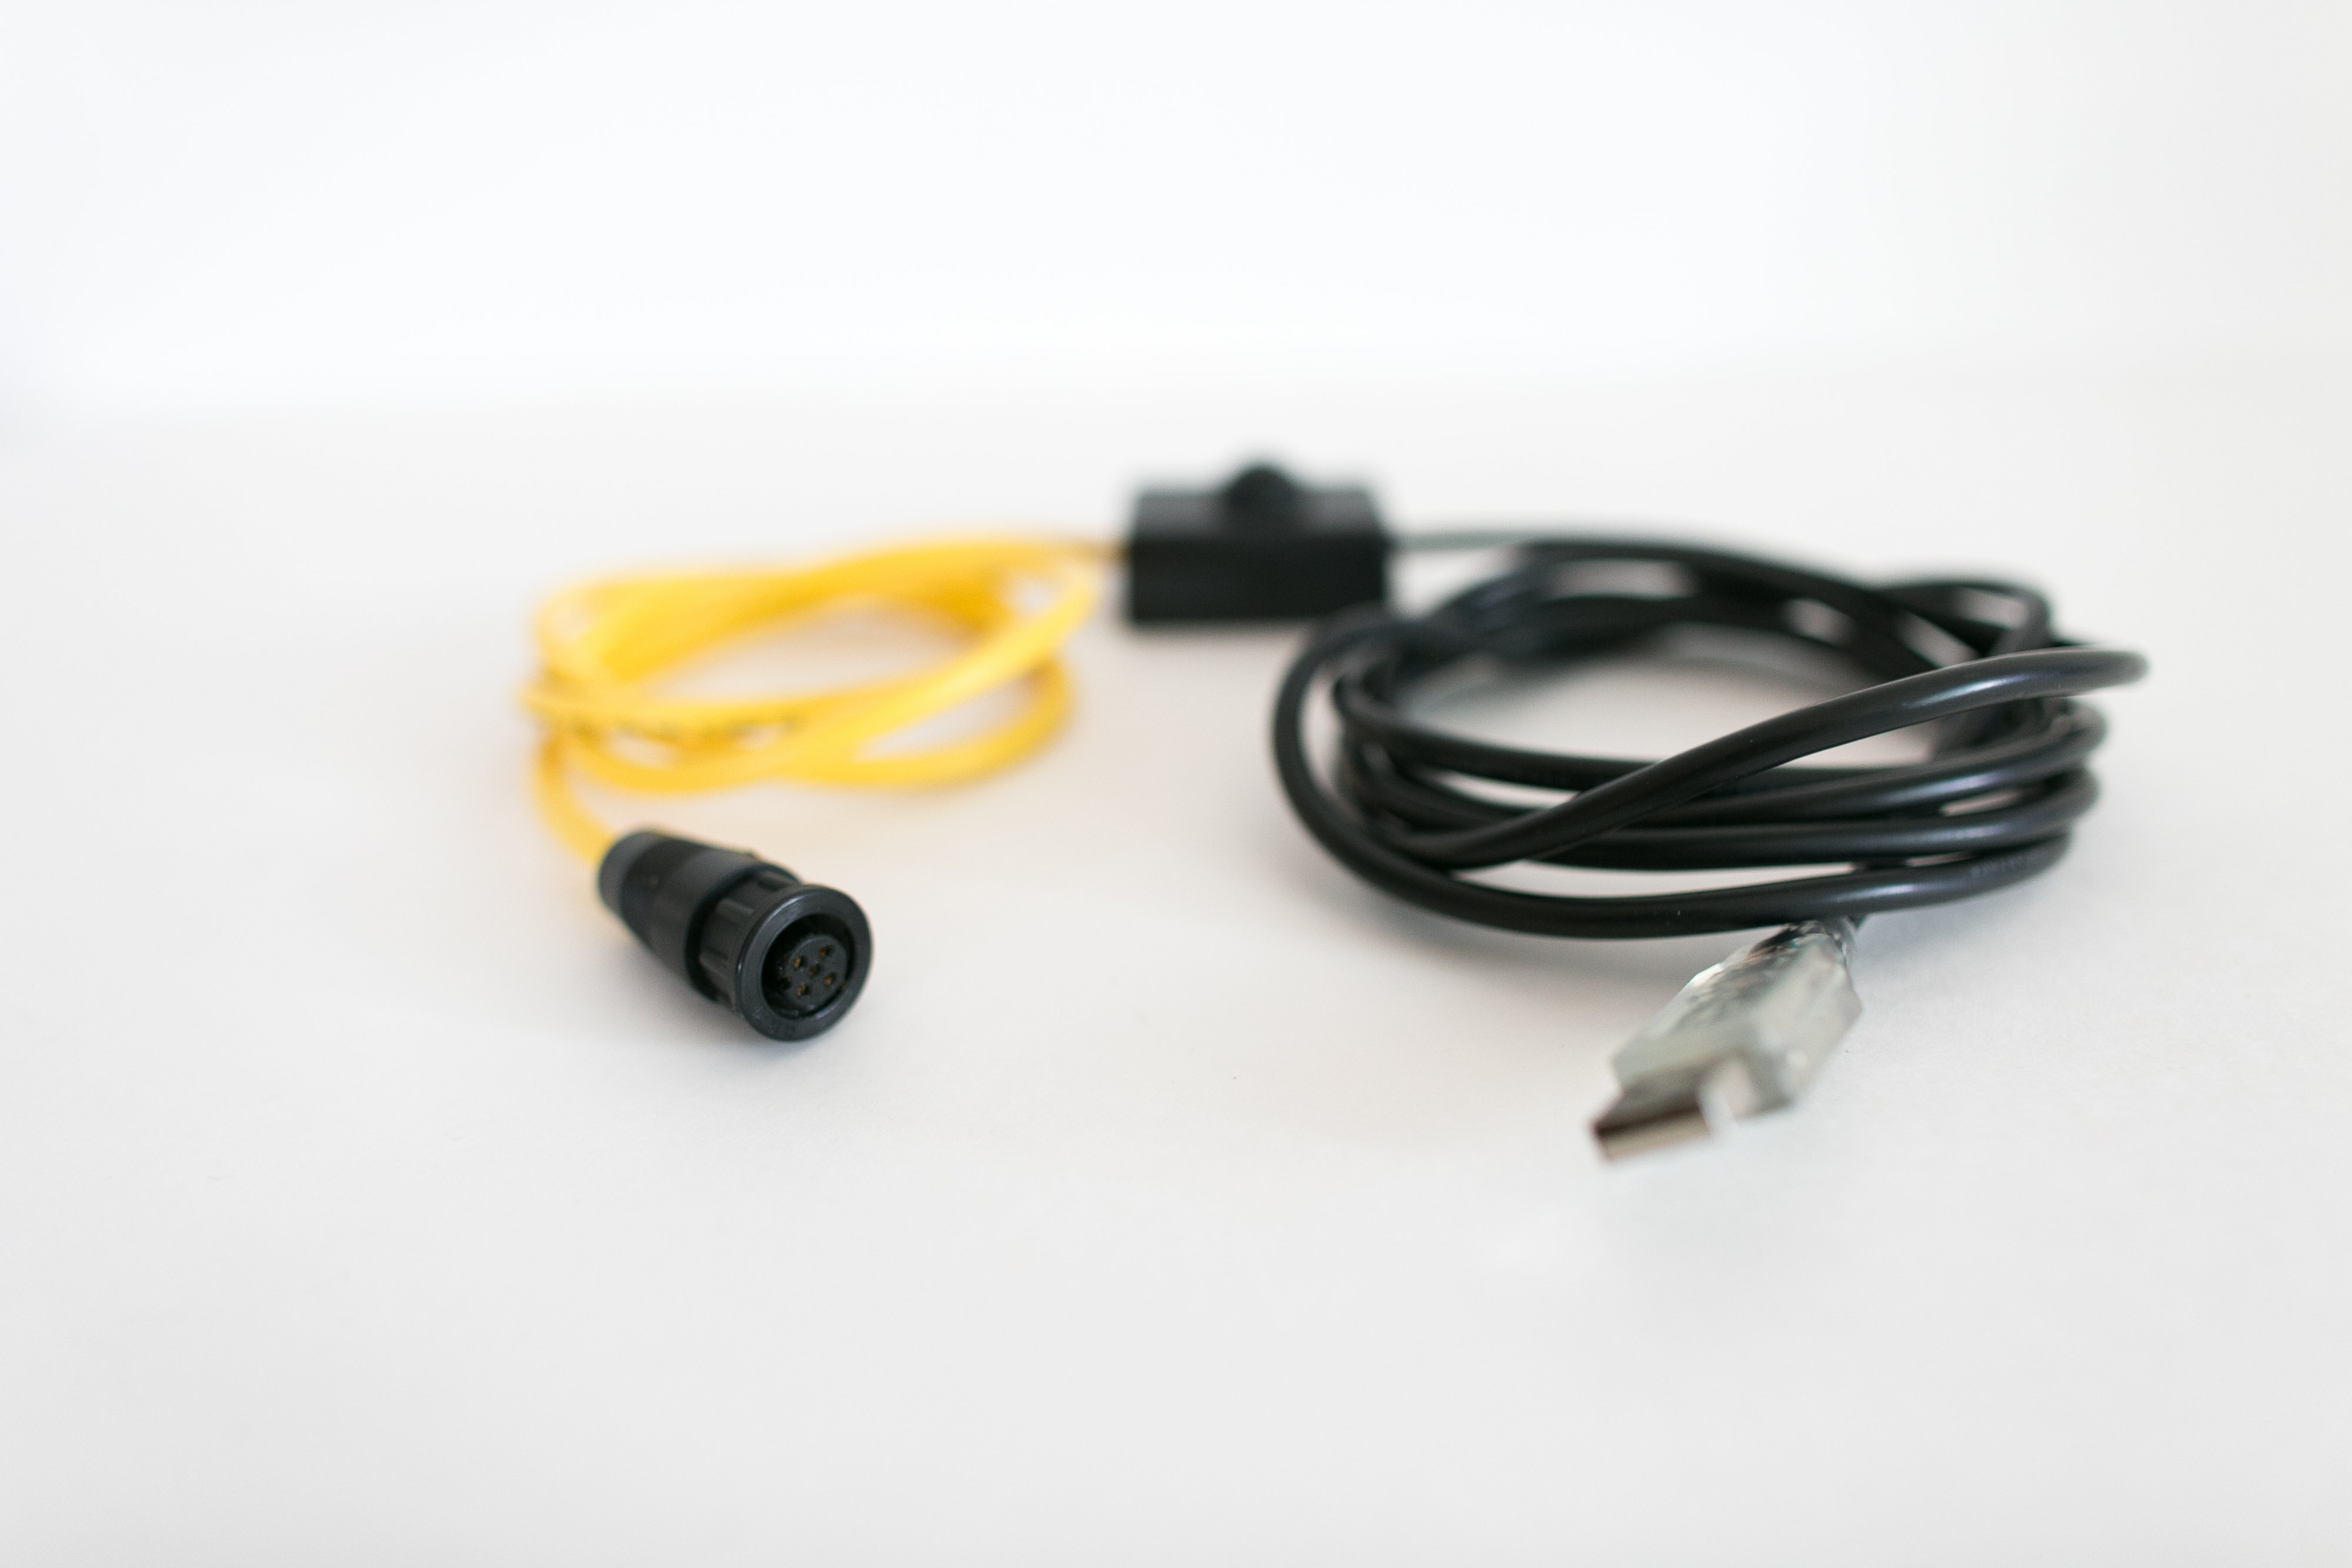 Communications Cable with USB